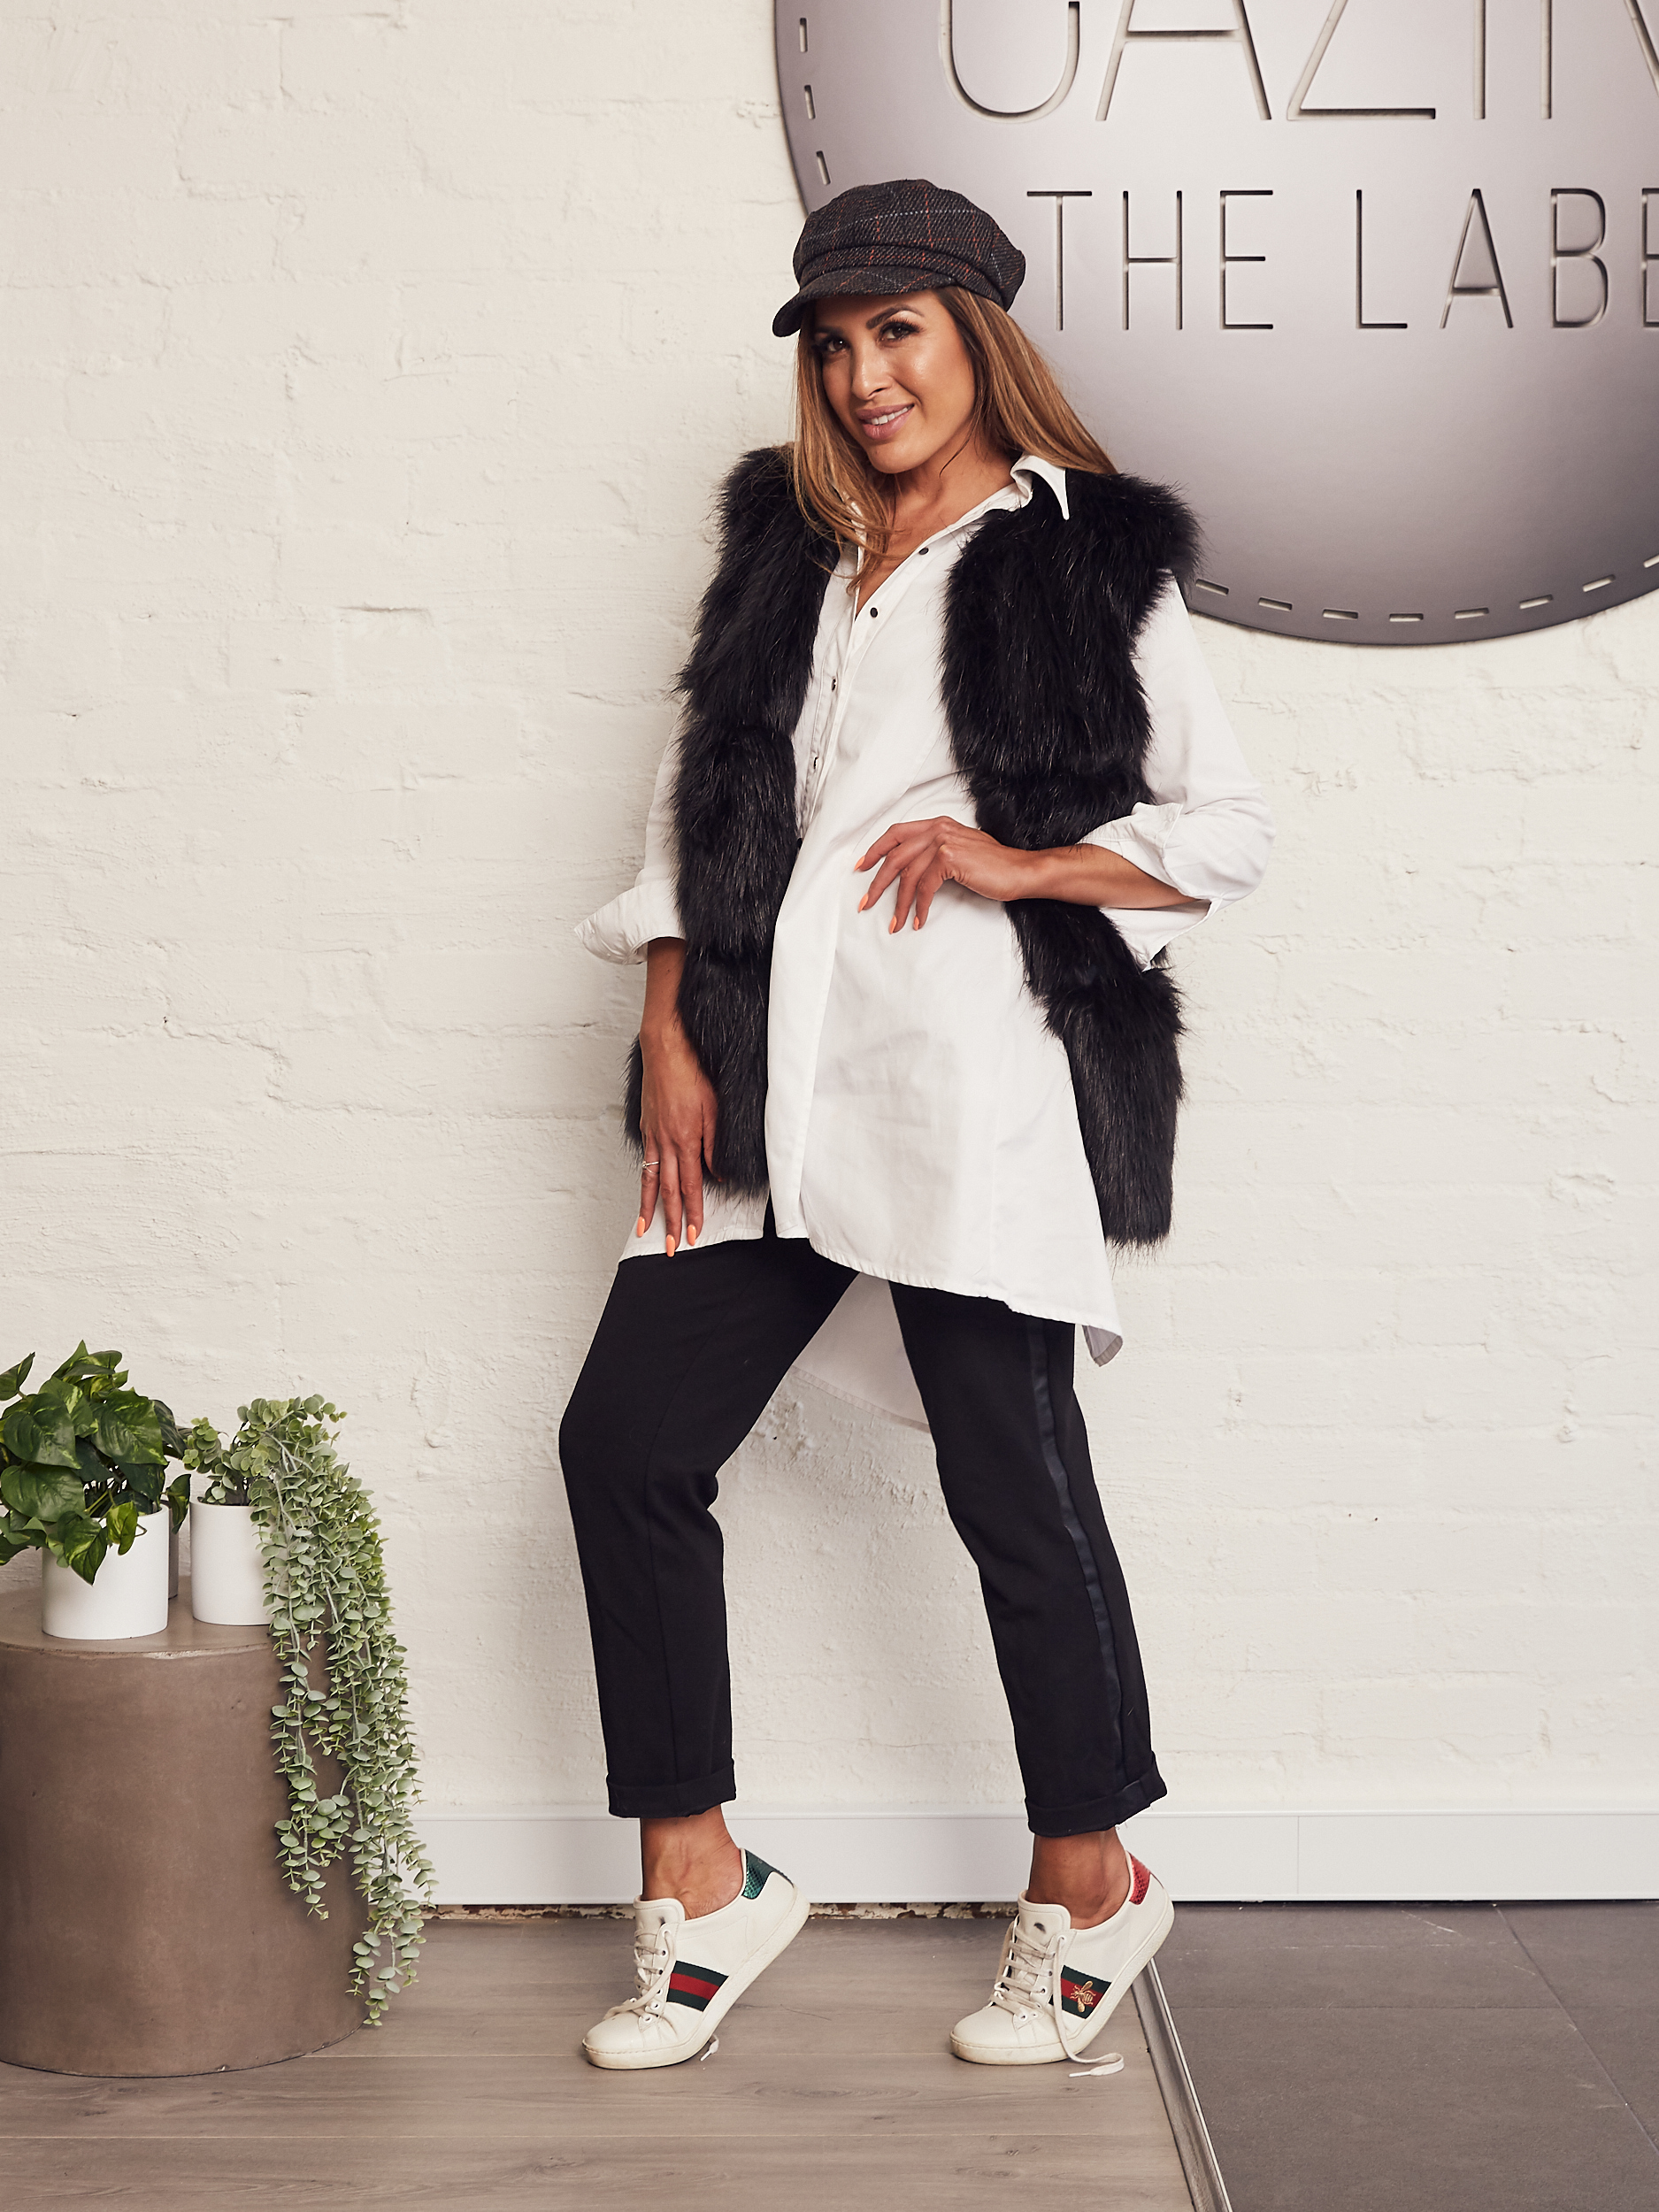 Take your style to casual with runners, hat and a faux fur vest.